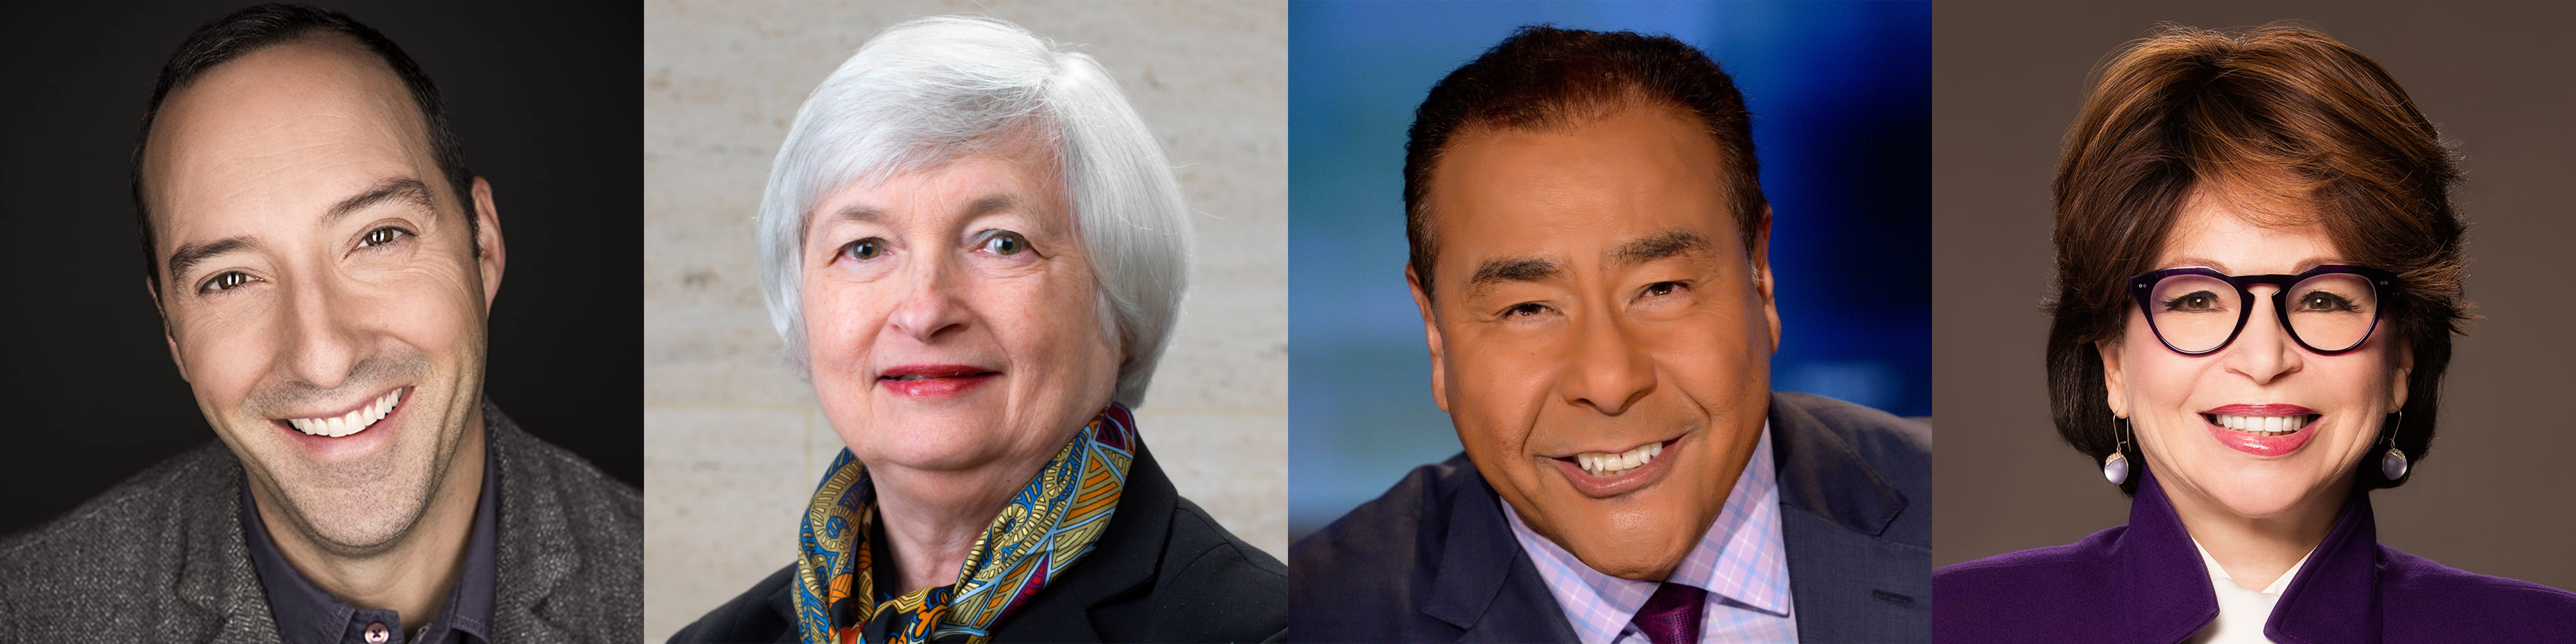 Photo montage showing, from left to right, Tony Hale, Janet Yellen, John Quiñones, and Valerie Jarrett